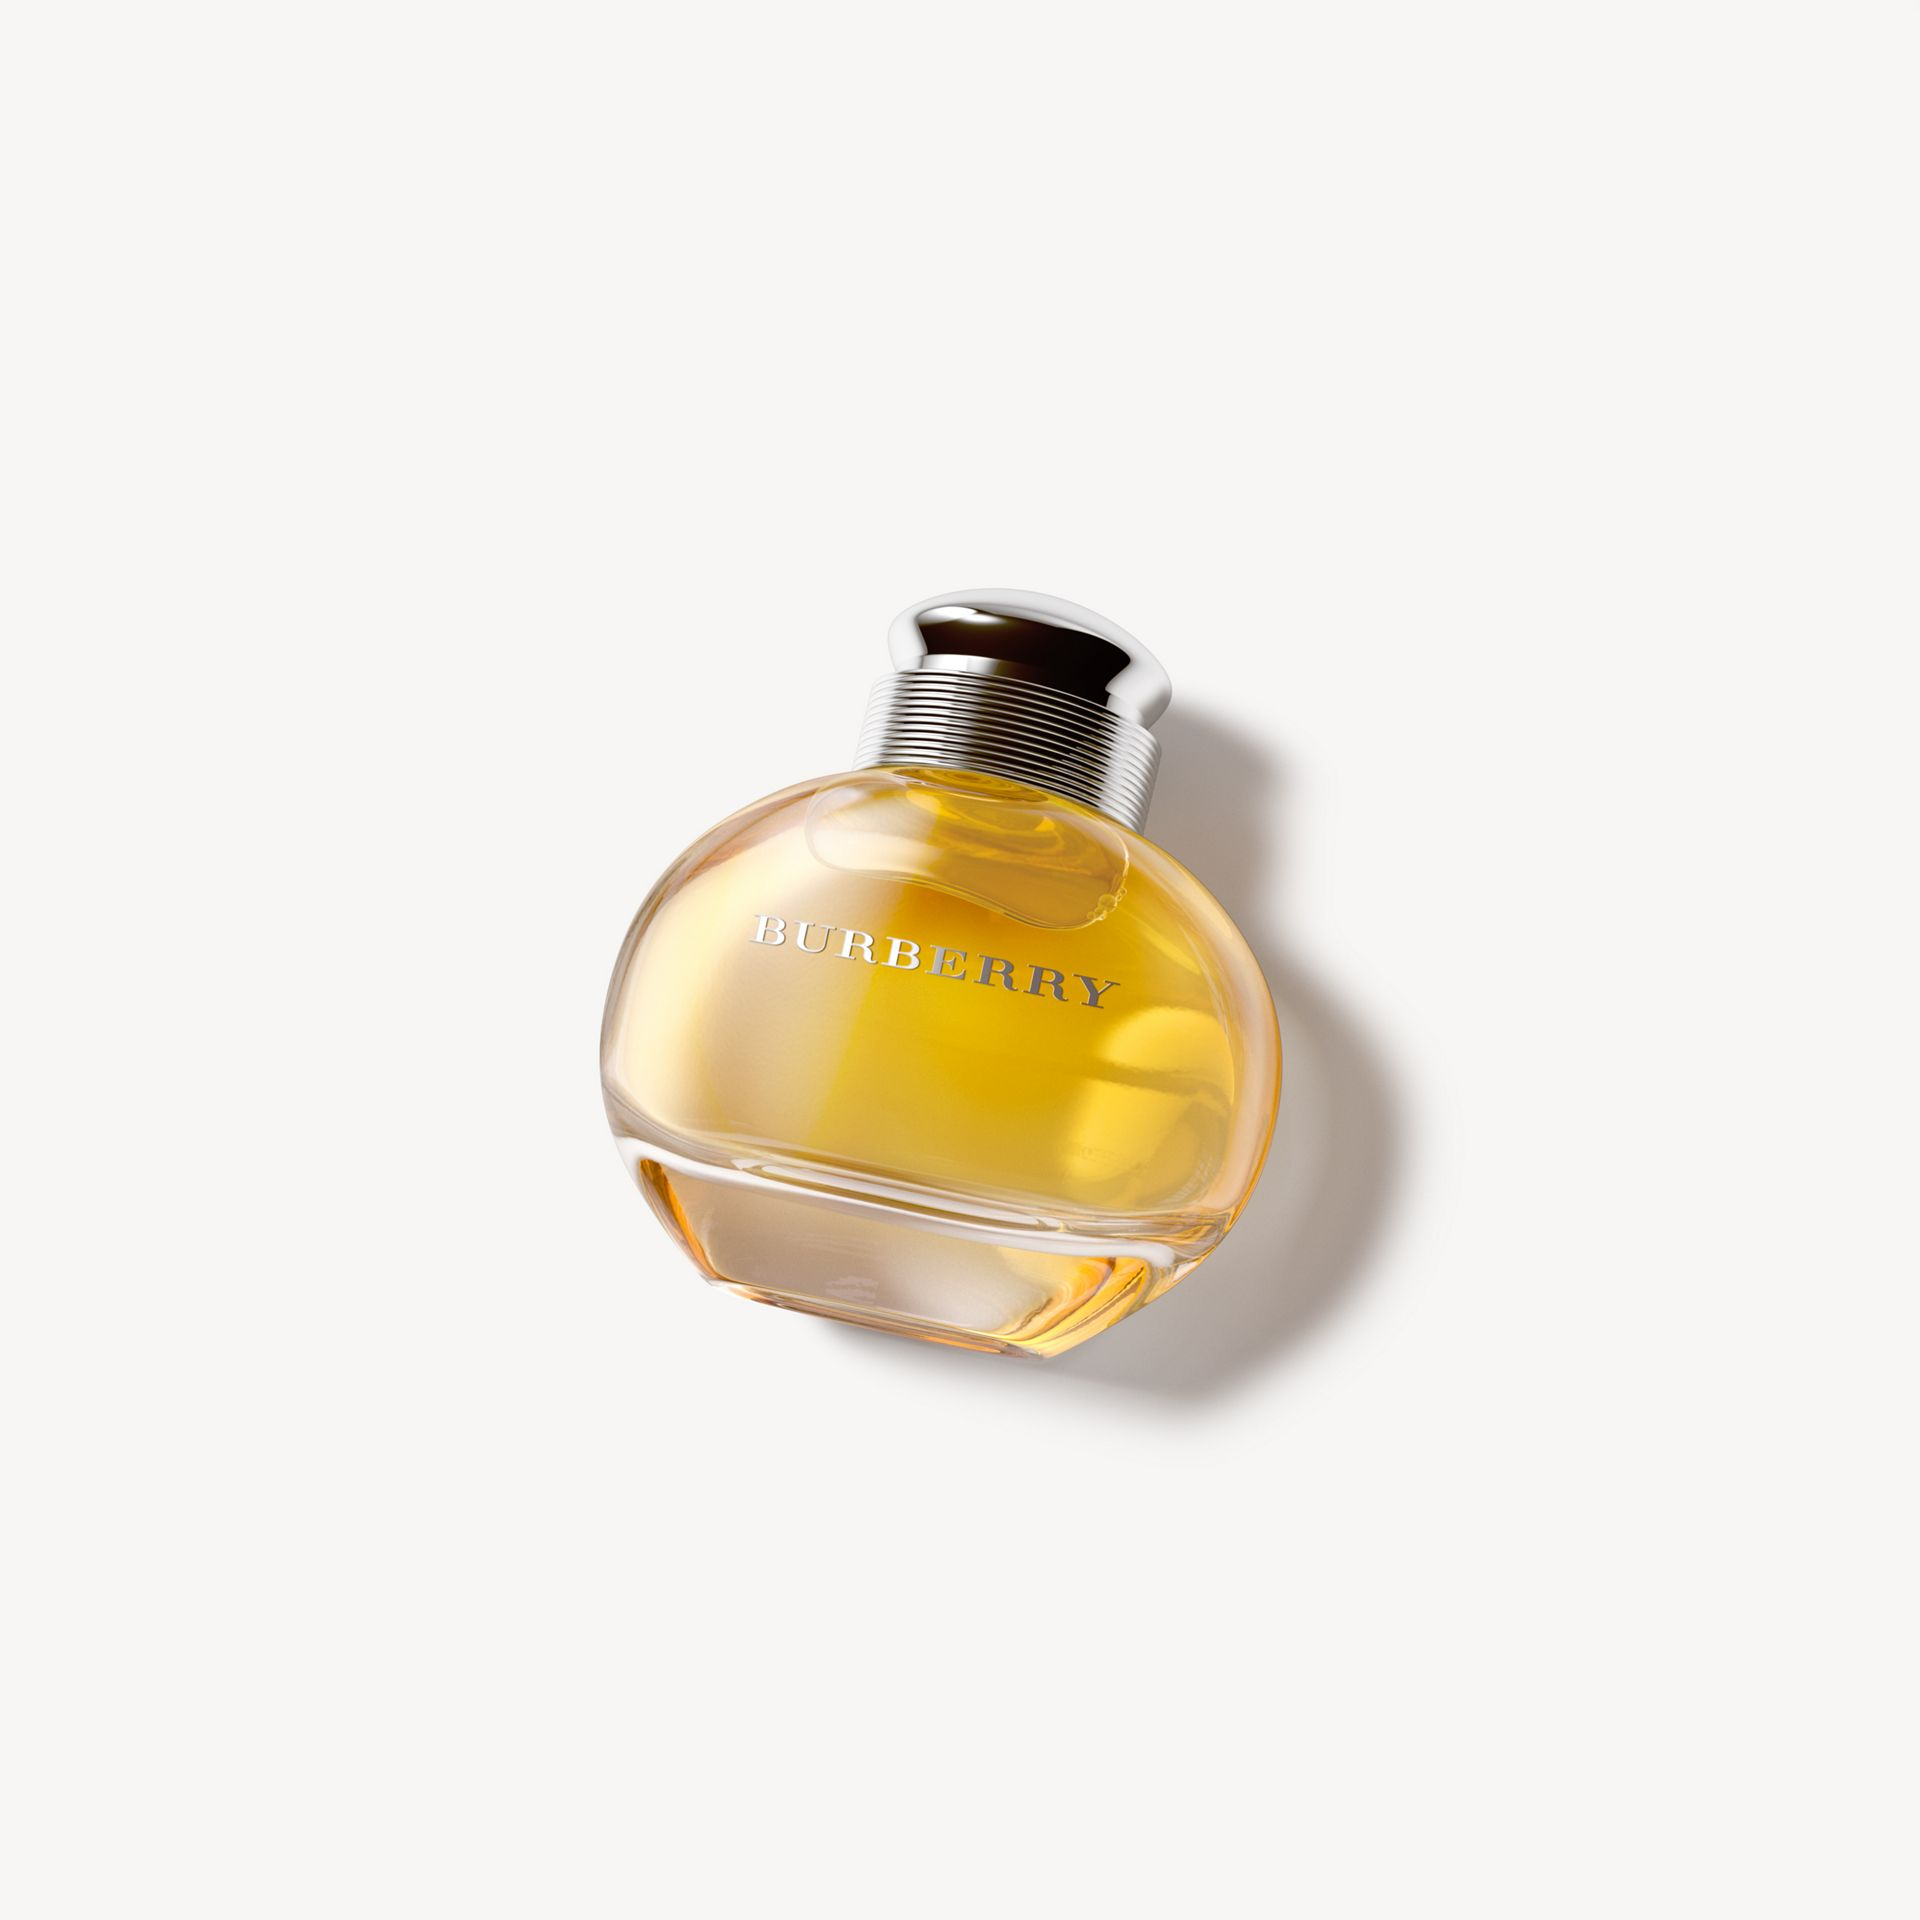 Burberry For Women Eau de Parfum 50ml - Women | Burberry - gallery image 1